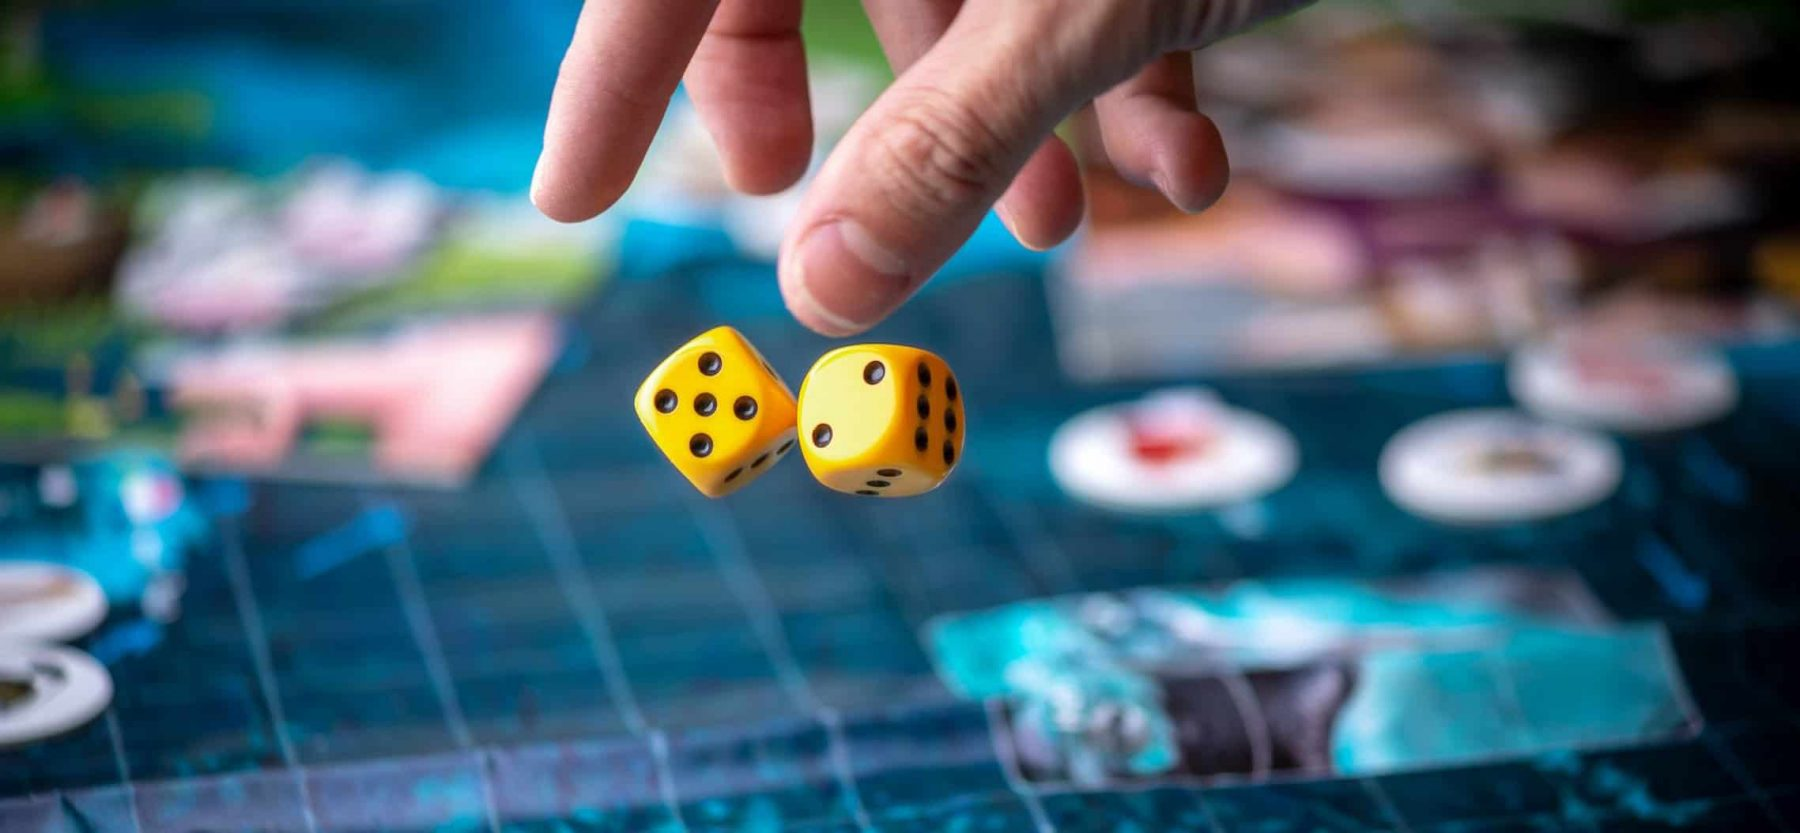 This is a picture of a hand throws two yellow dice on the blue field of the fantasy game Board games strategy for an article called the benefits of Win Loss Analysis, by Octopus Competitive Intelligence strategic intelligence due diligence and Market analysis